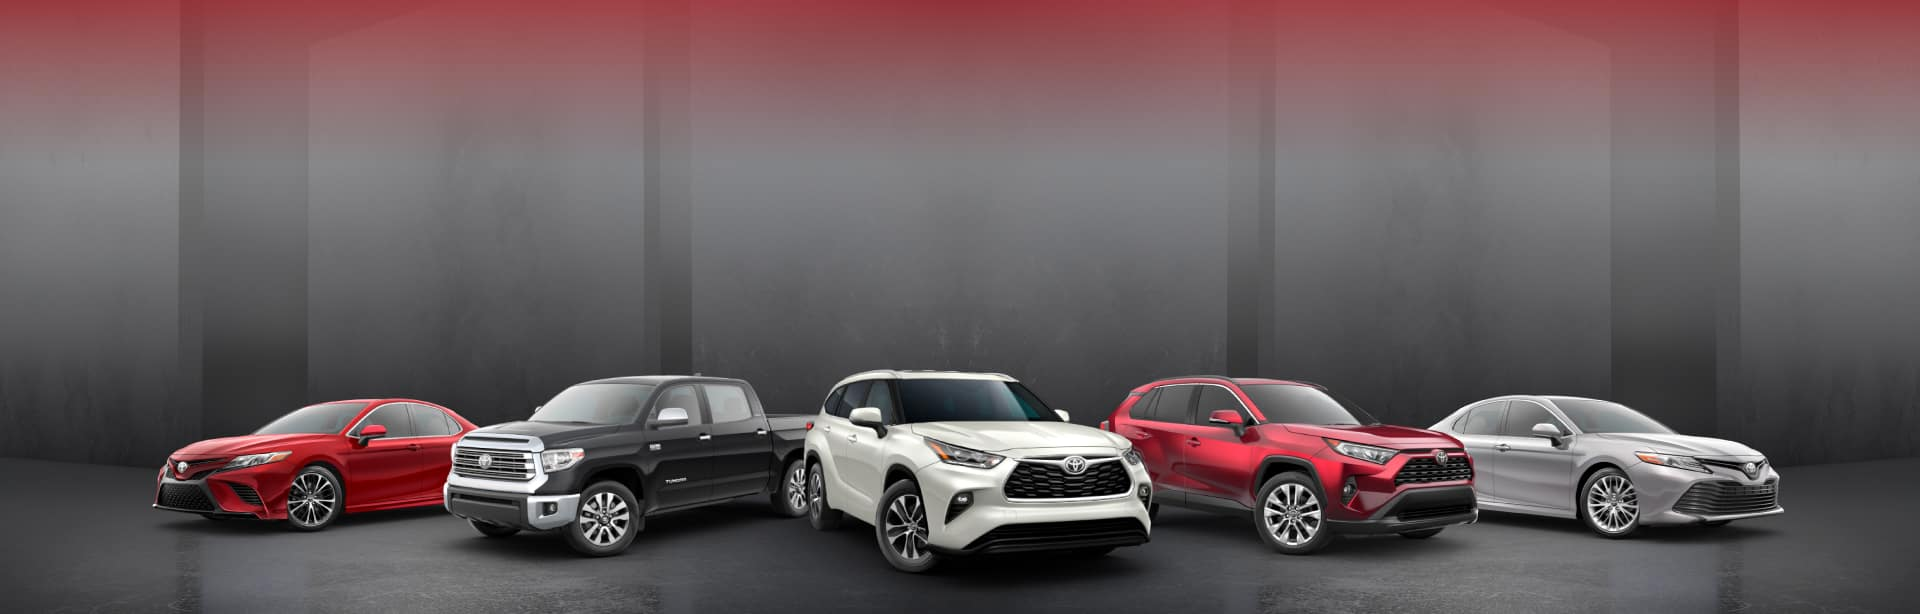 Toyota model lineup Header Image